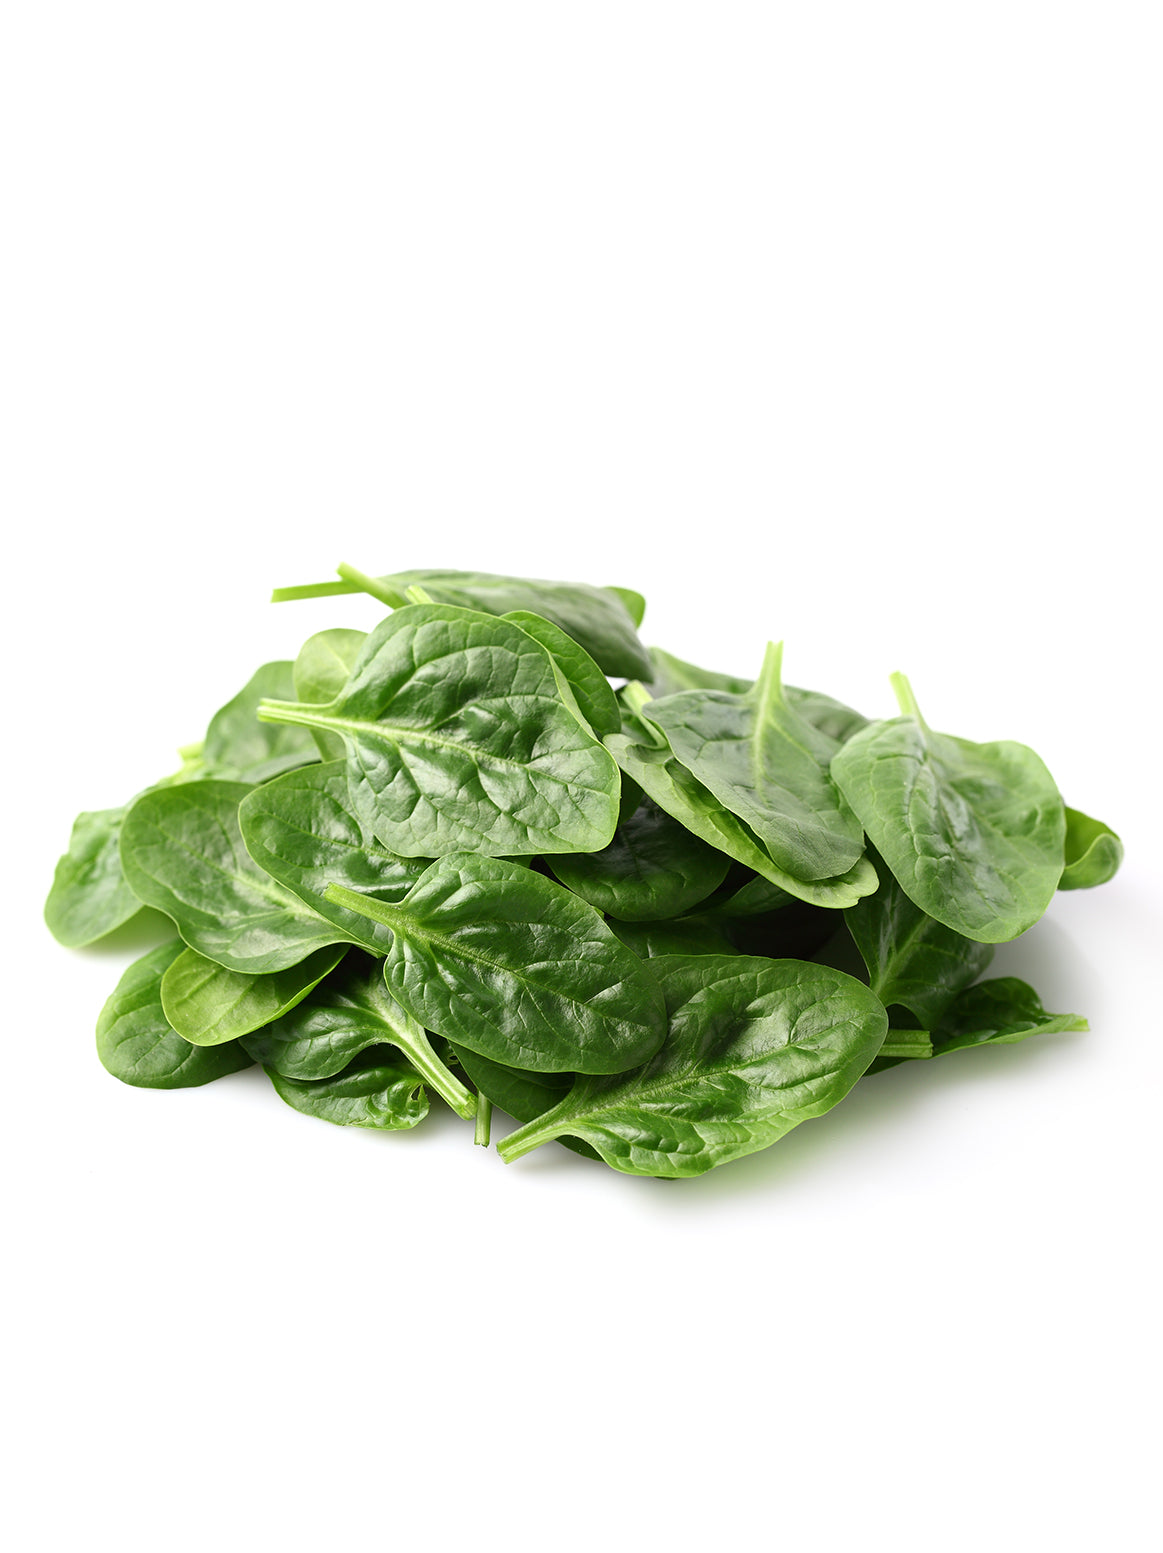 Spinach/Cello - 1 Package